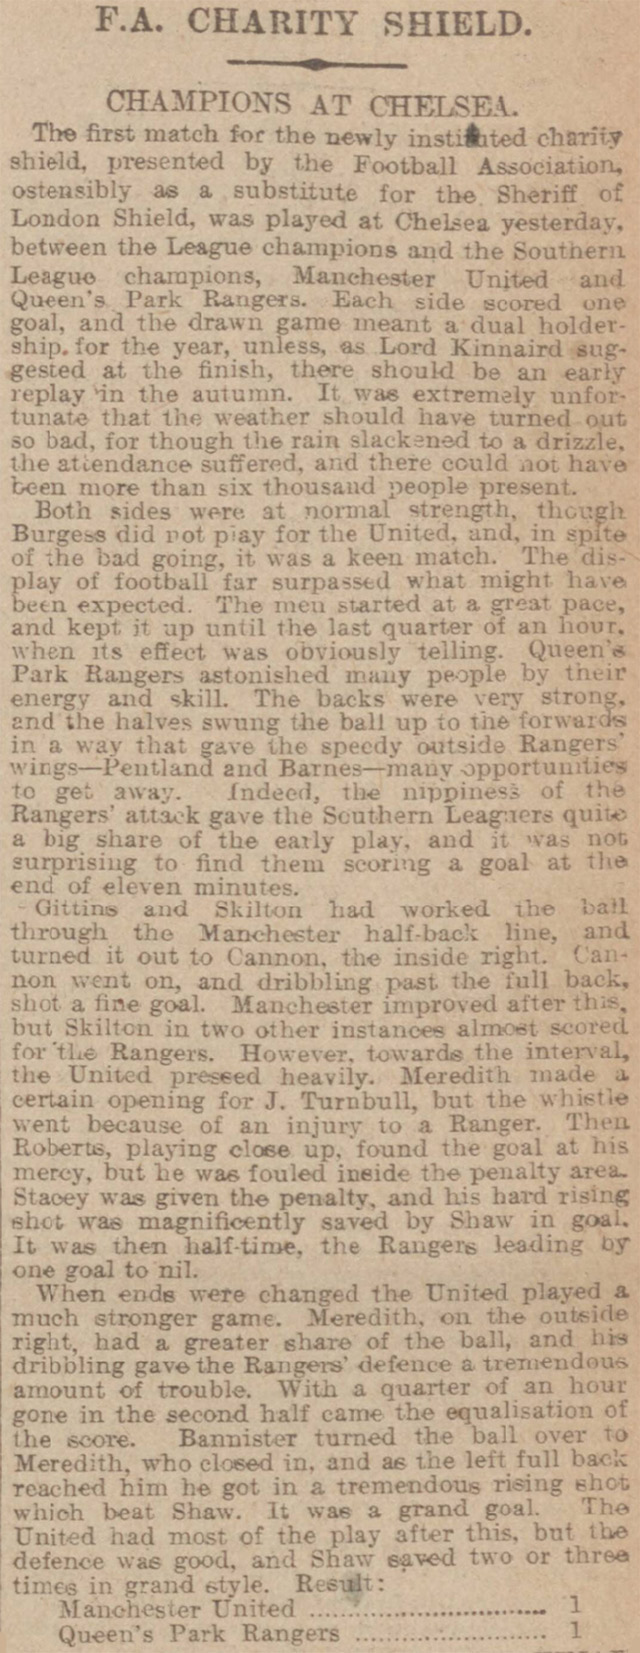 The result of the FA Charity Shield in 1908, reported by the Manchester Courier and Lancashire General Advertiser